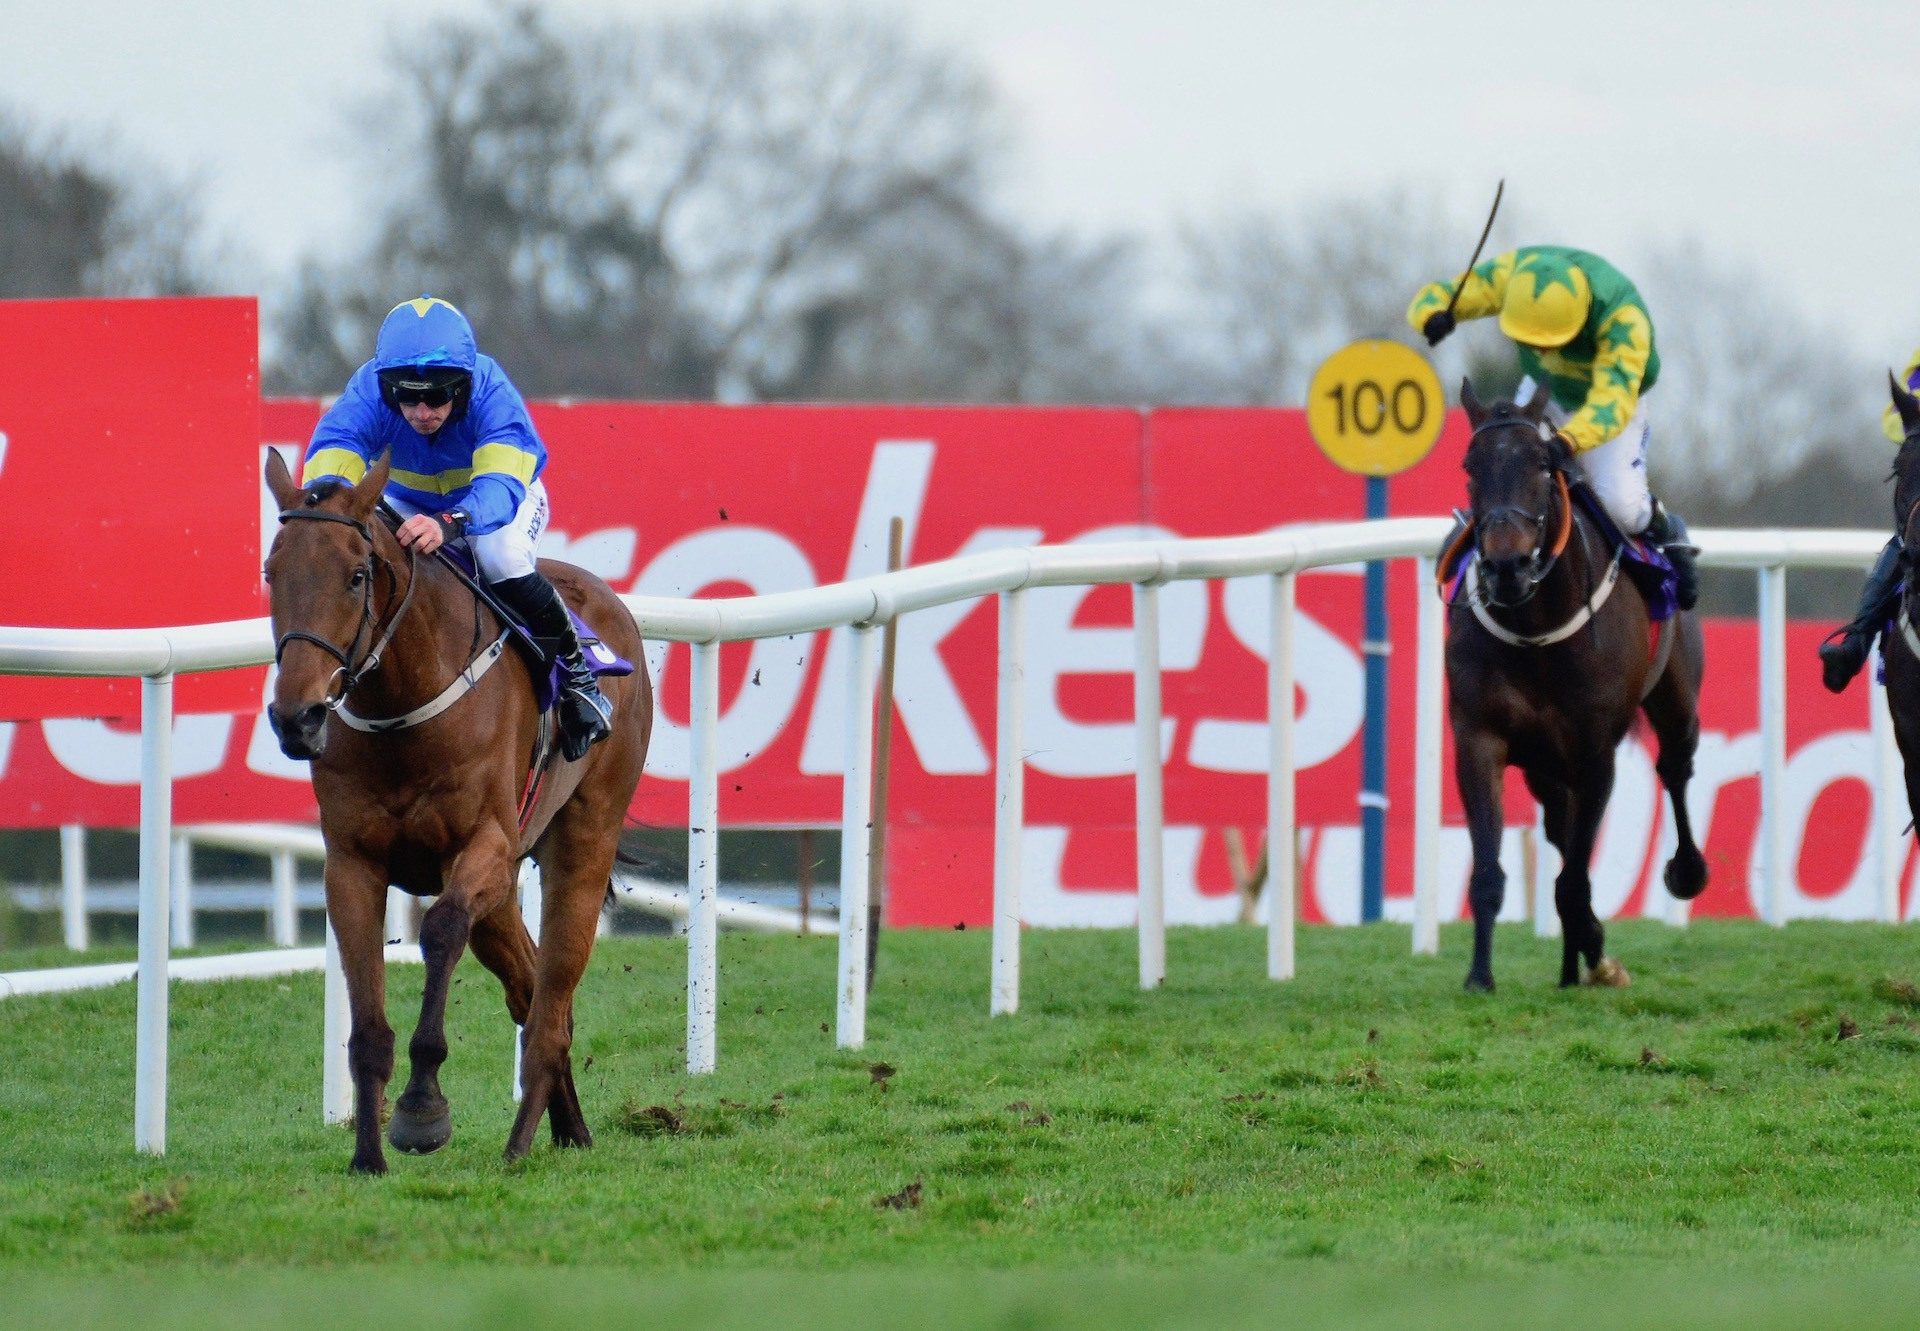 Dysart Dynamo (Westerner) Wins The Bumper At Punchestown